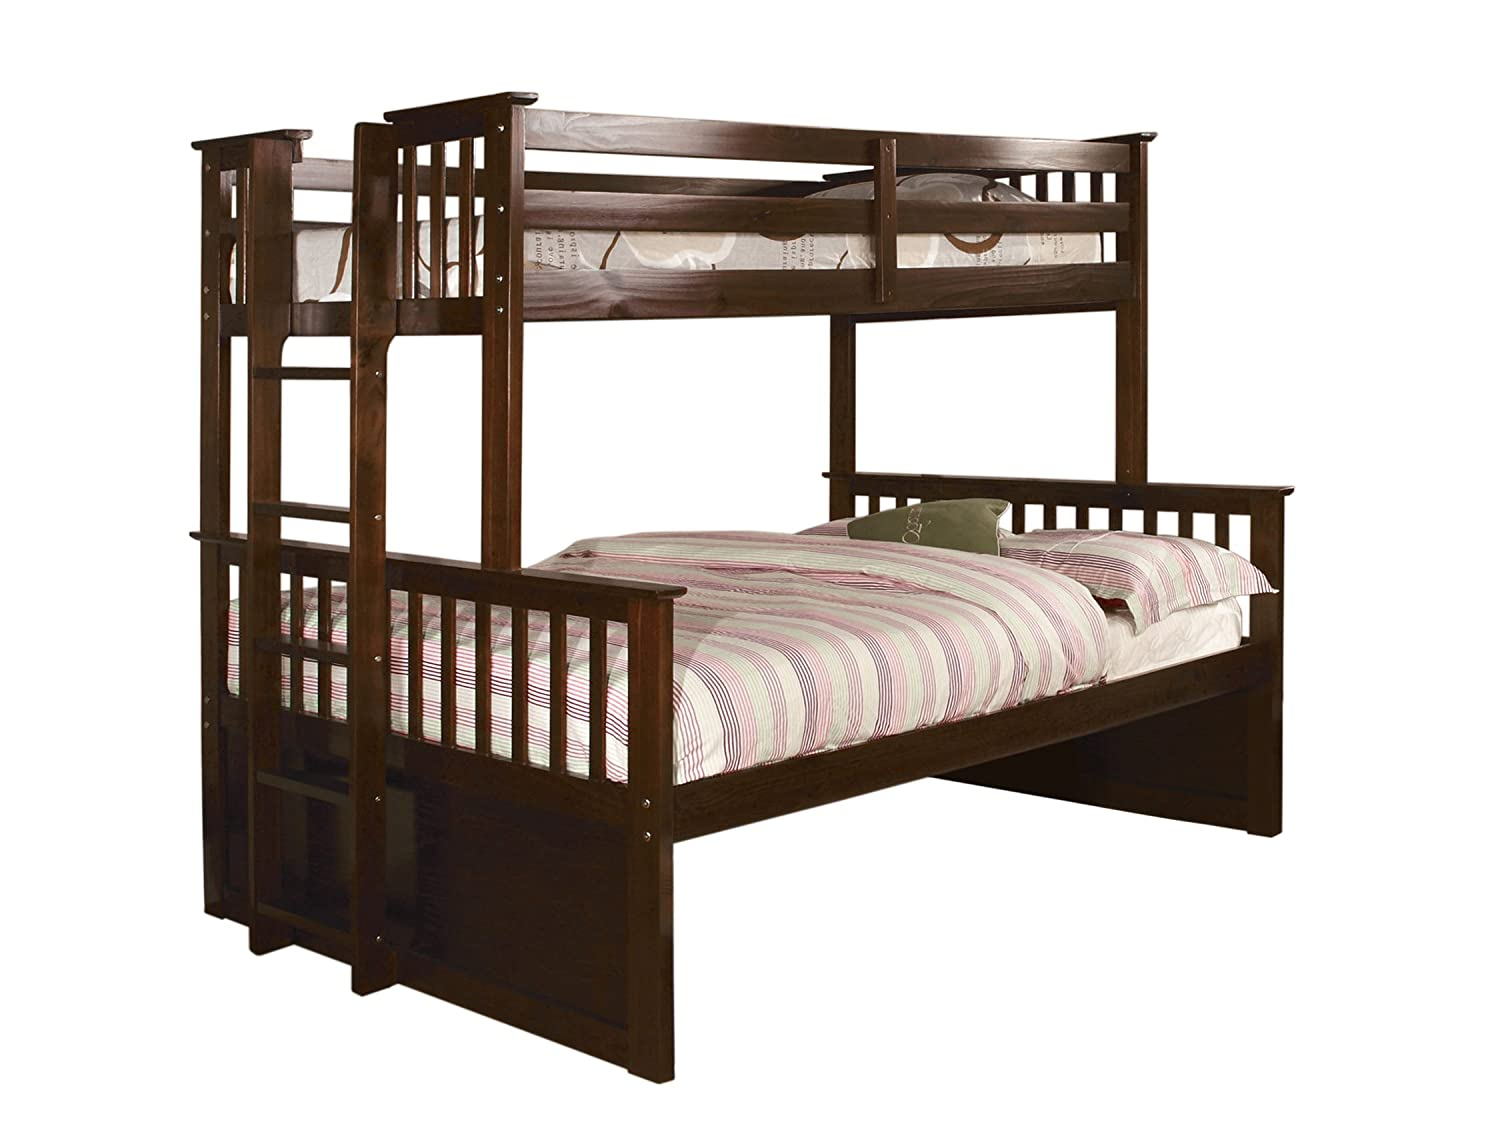 Amazon.com: Furniture of America Pammy Twin over Queen Bunk Bed, Oak ...